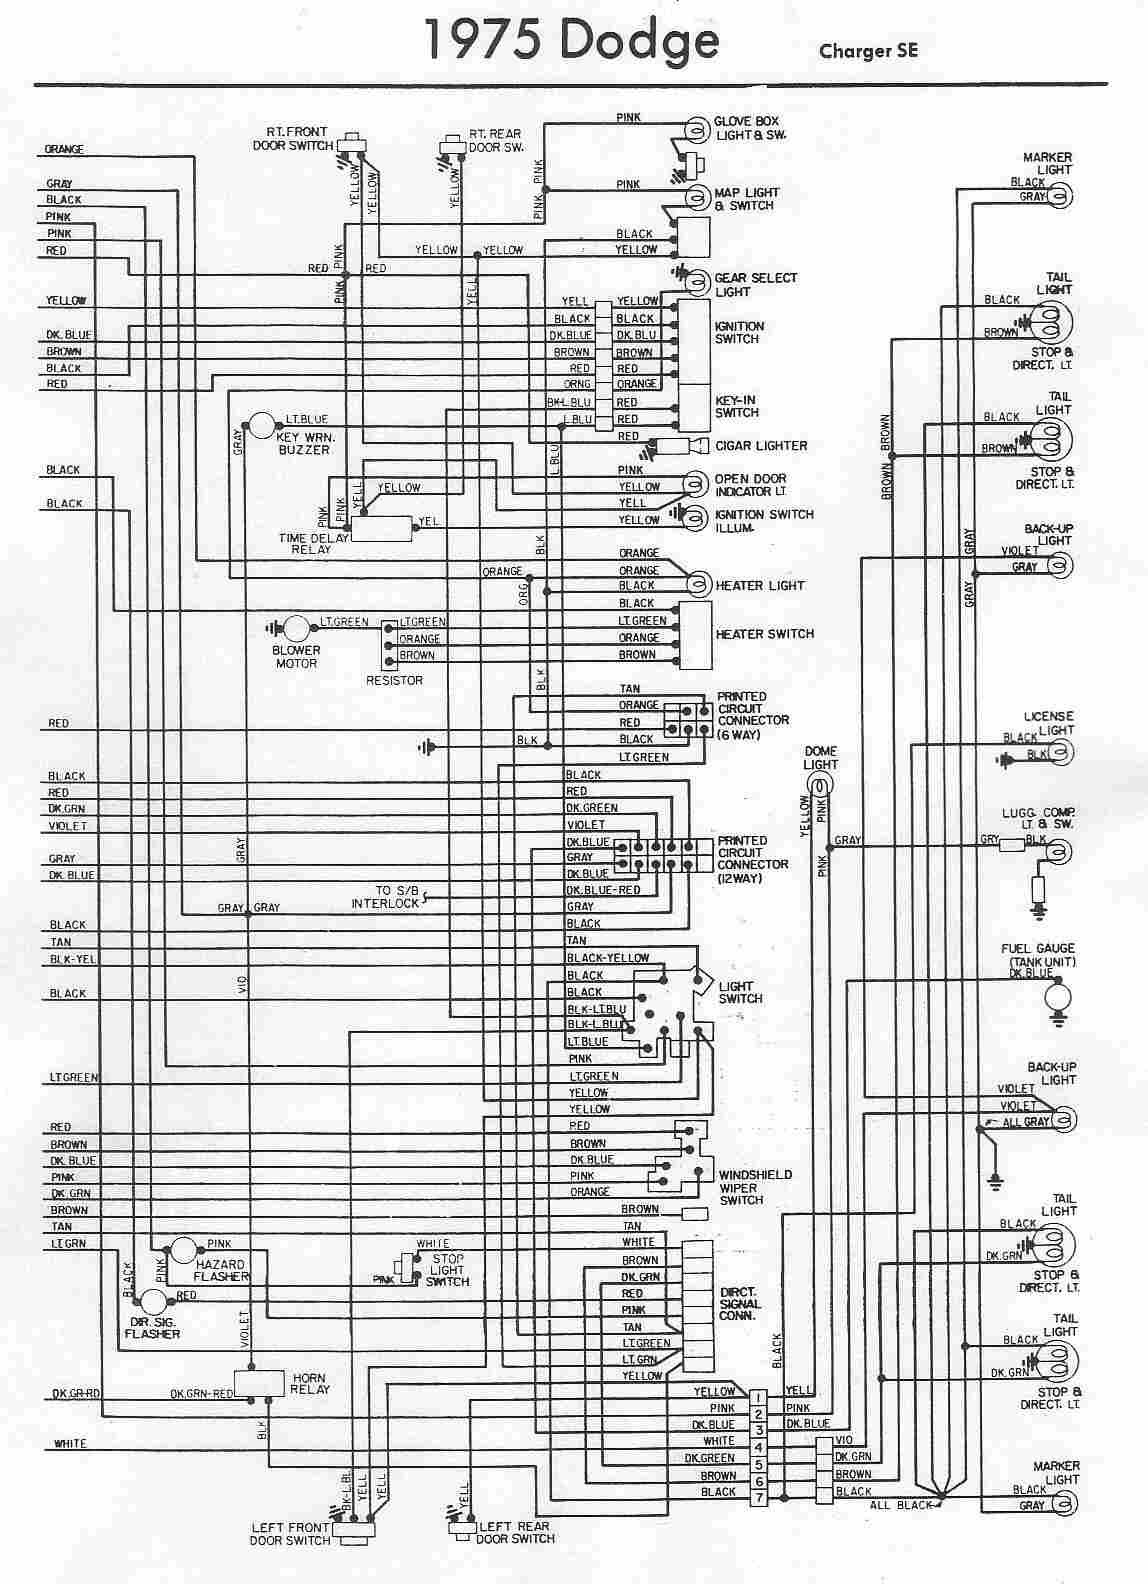 medium resolution of 1977 dodge w200 wiring diagram wiring diagram new1973 dodge w200 wiring diagram wiring diagram library 1977